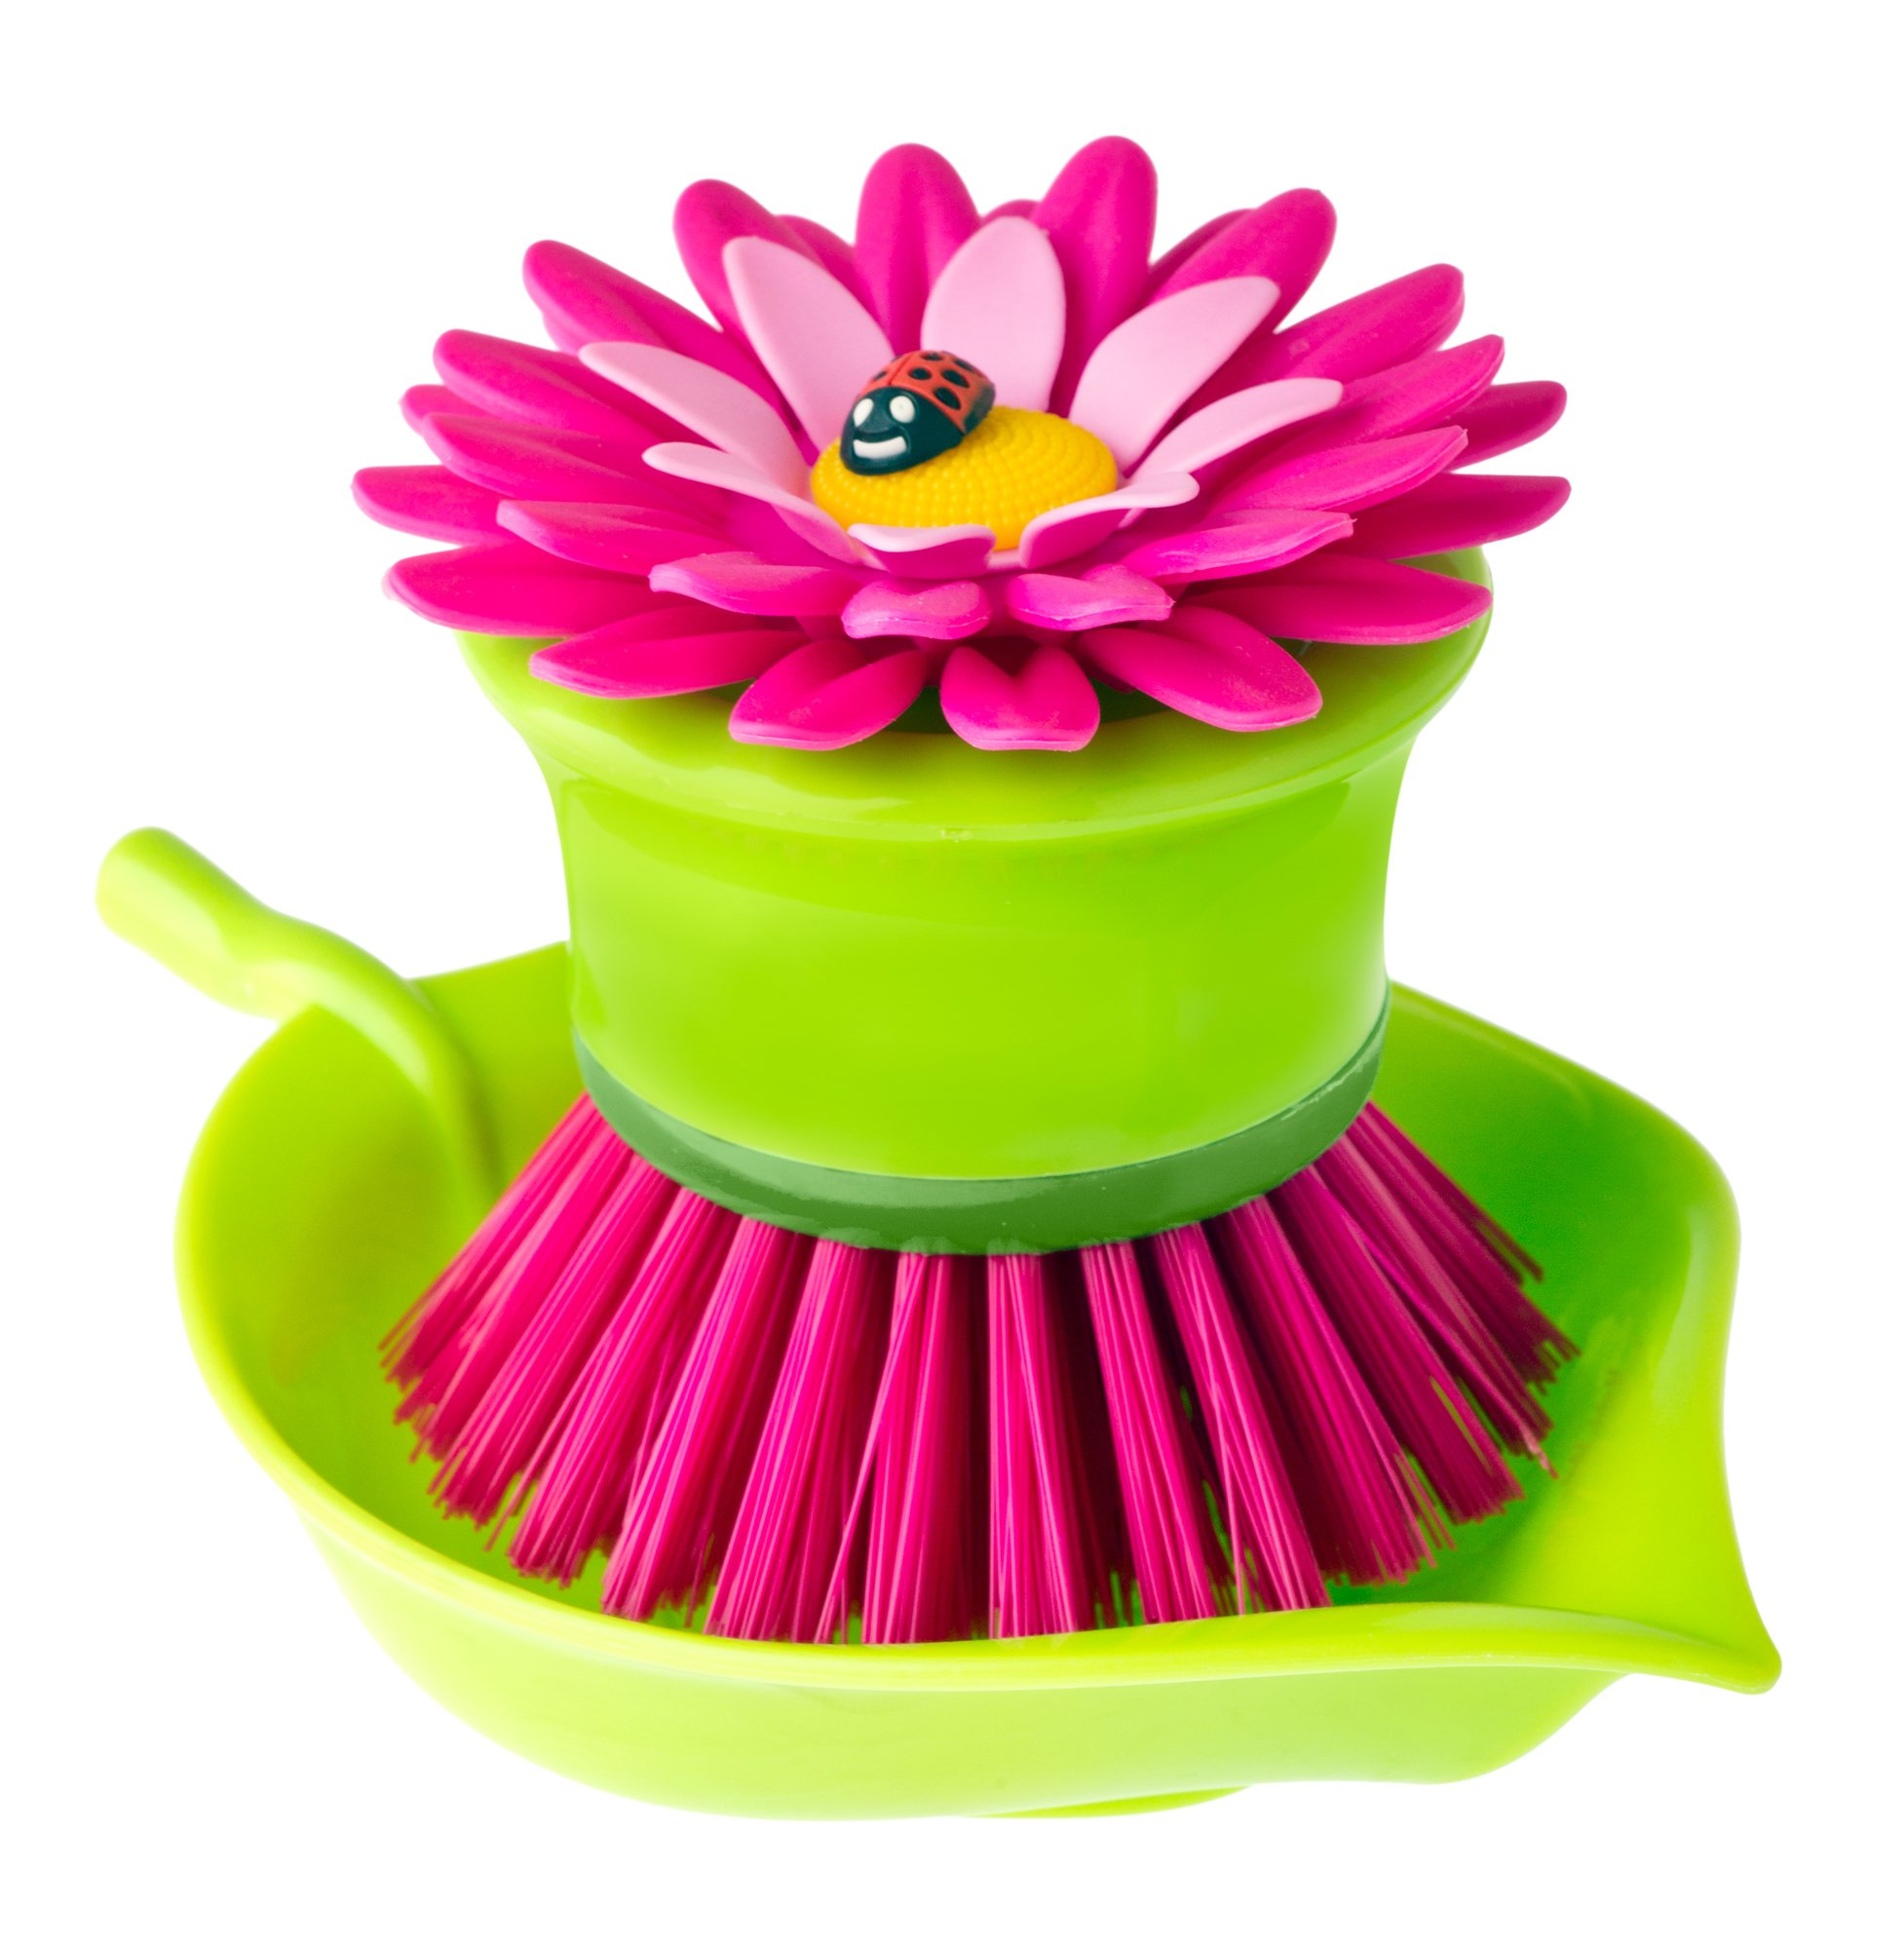 Vigar Flower Power Pink Palm Dish Brush With Holder, 5-3/4-Inches by 3-3/4-Inches, Pink, Green